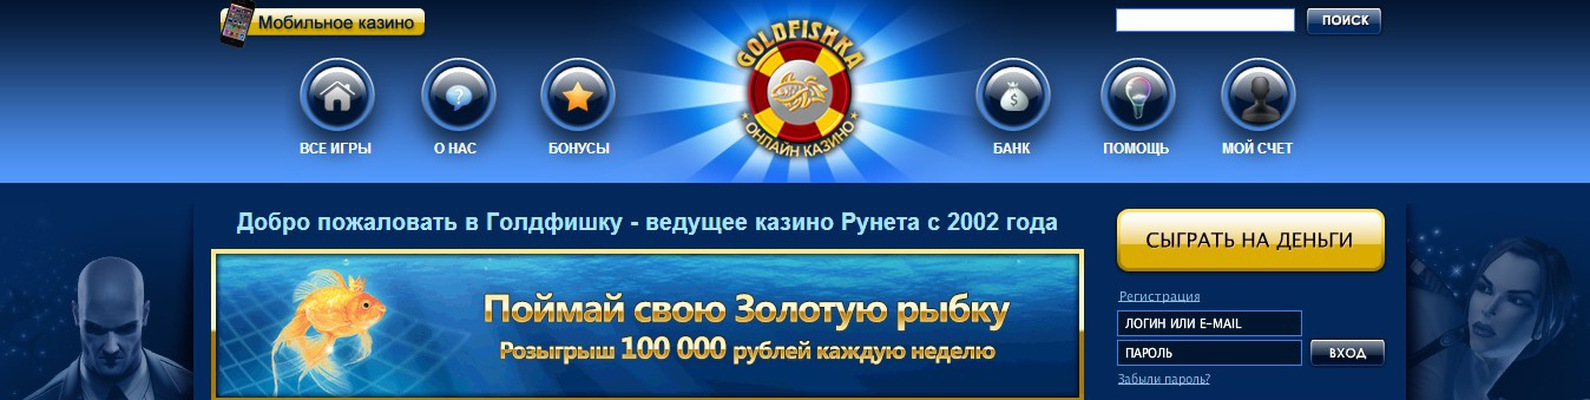 Анте pokerstars star shop